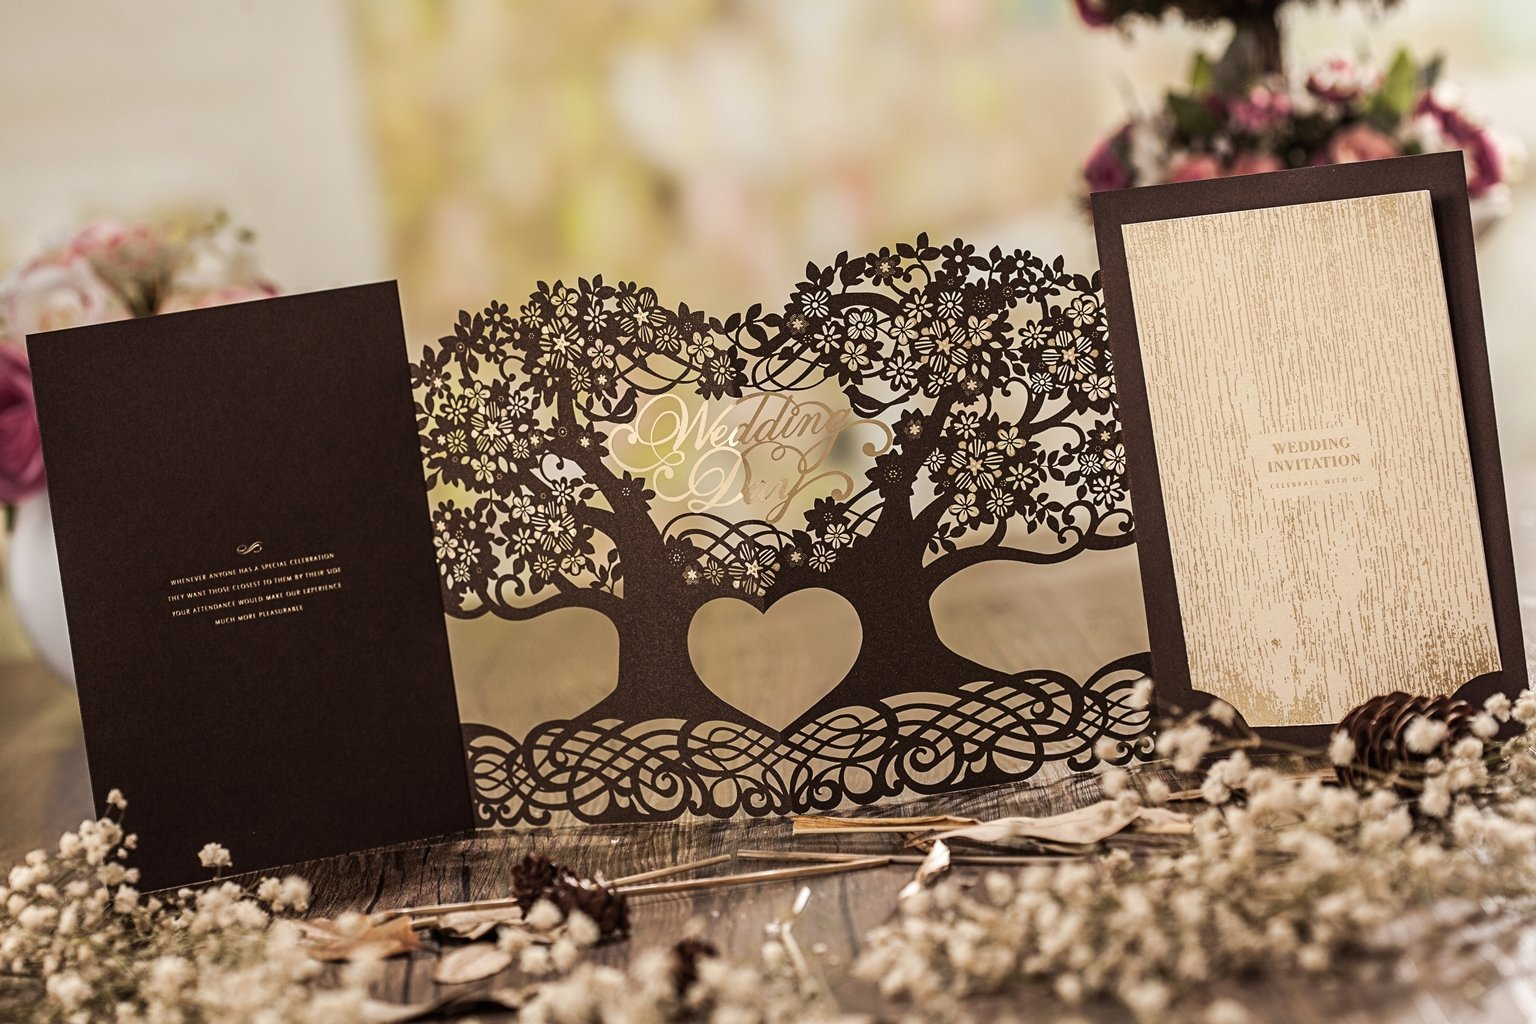 Wishmade 3D Magic Tree Design Laser Cut Wedding Invitations Invites Card Stock For Engagement Party Bridal Shower CW5023 (50) by Wishmade